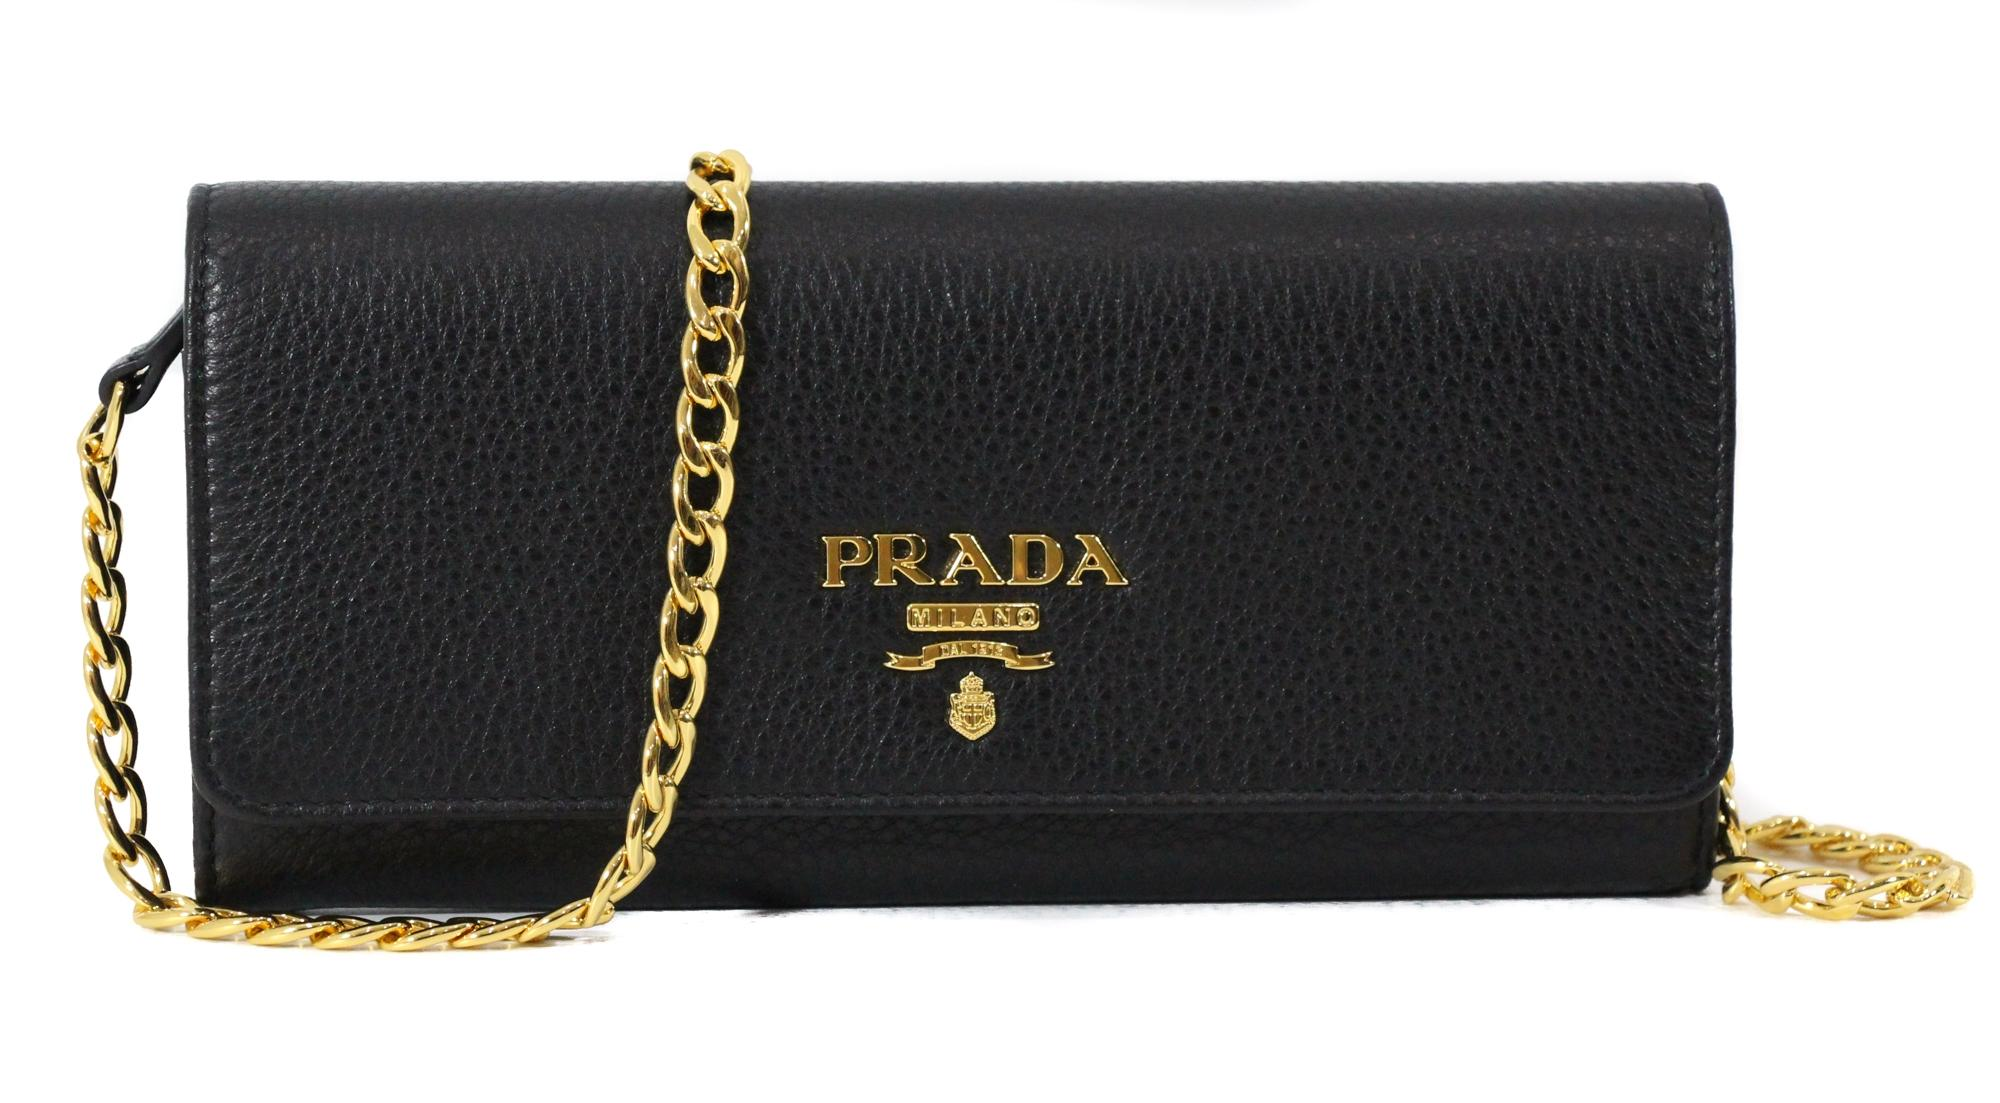 7d7d09978b451 ... australia prada black bags accessories more up to 70 off at tradesy  bc04c 267fd